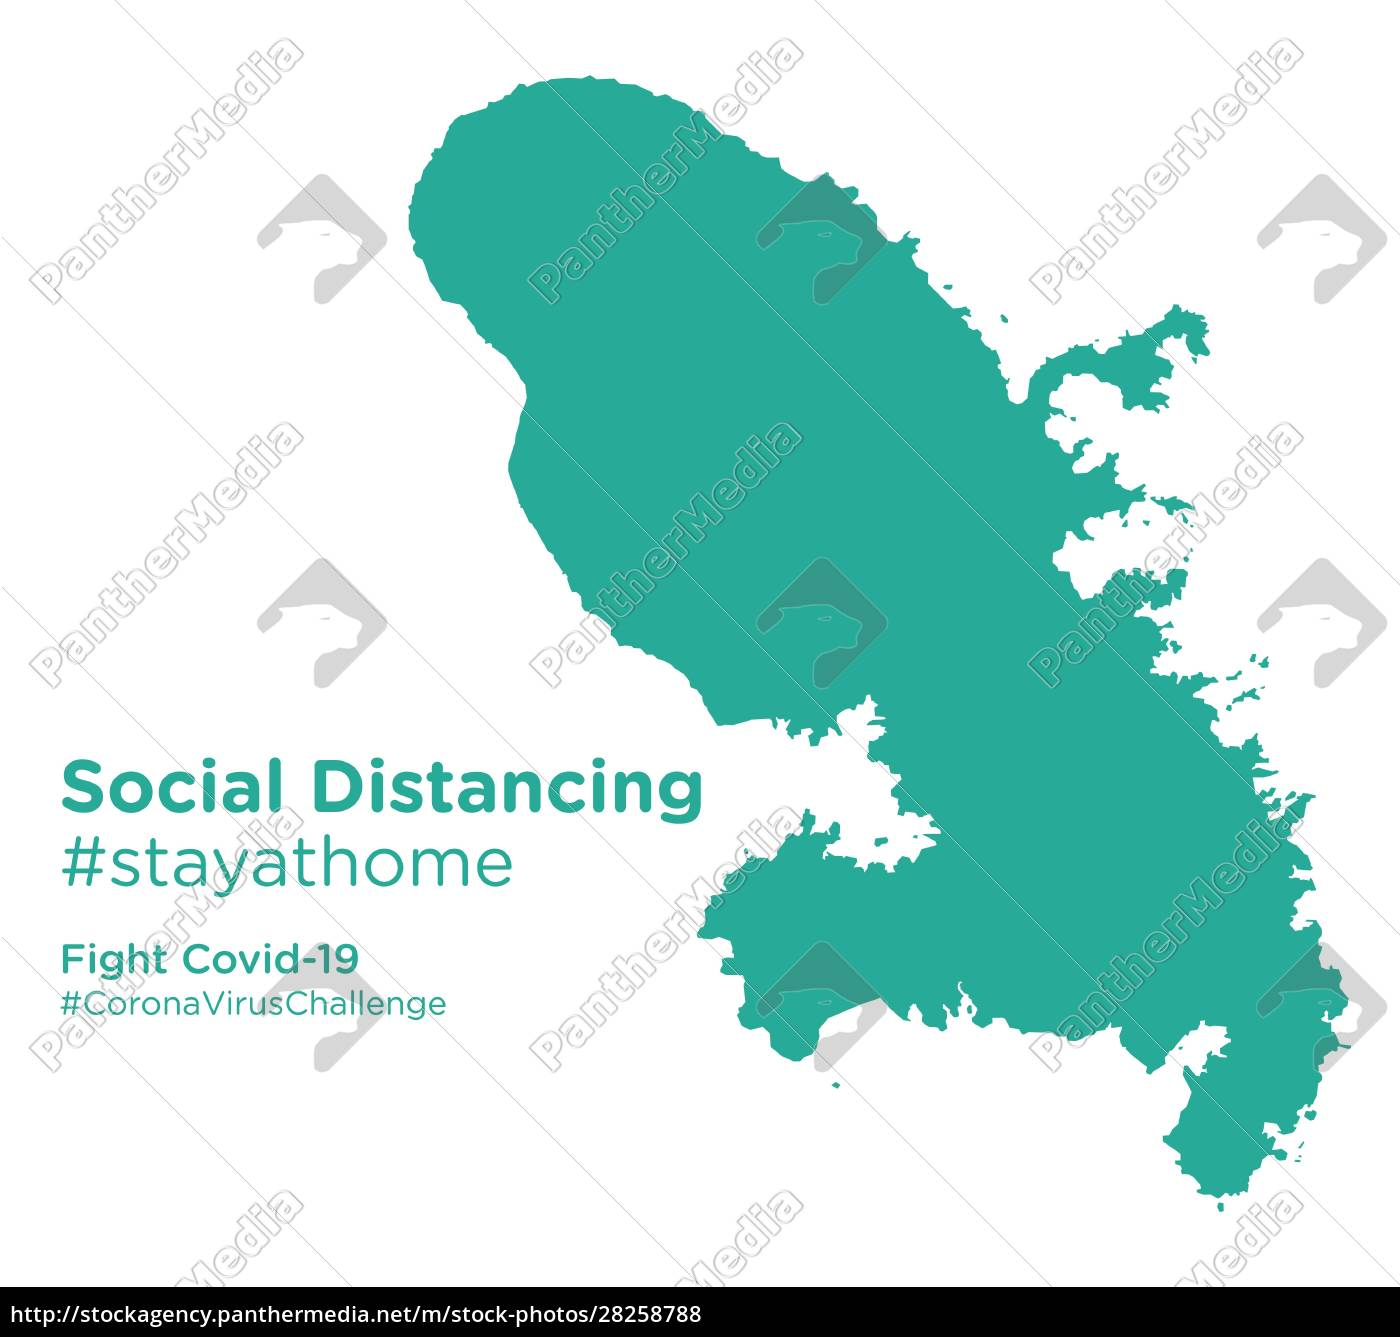 martinique, map, with, social, distancing, stayathome - 28258788